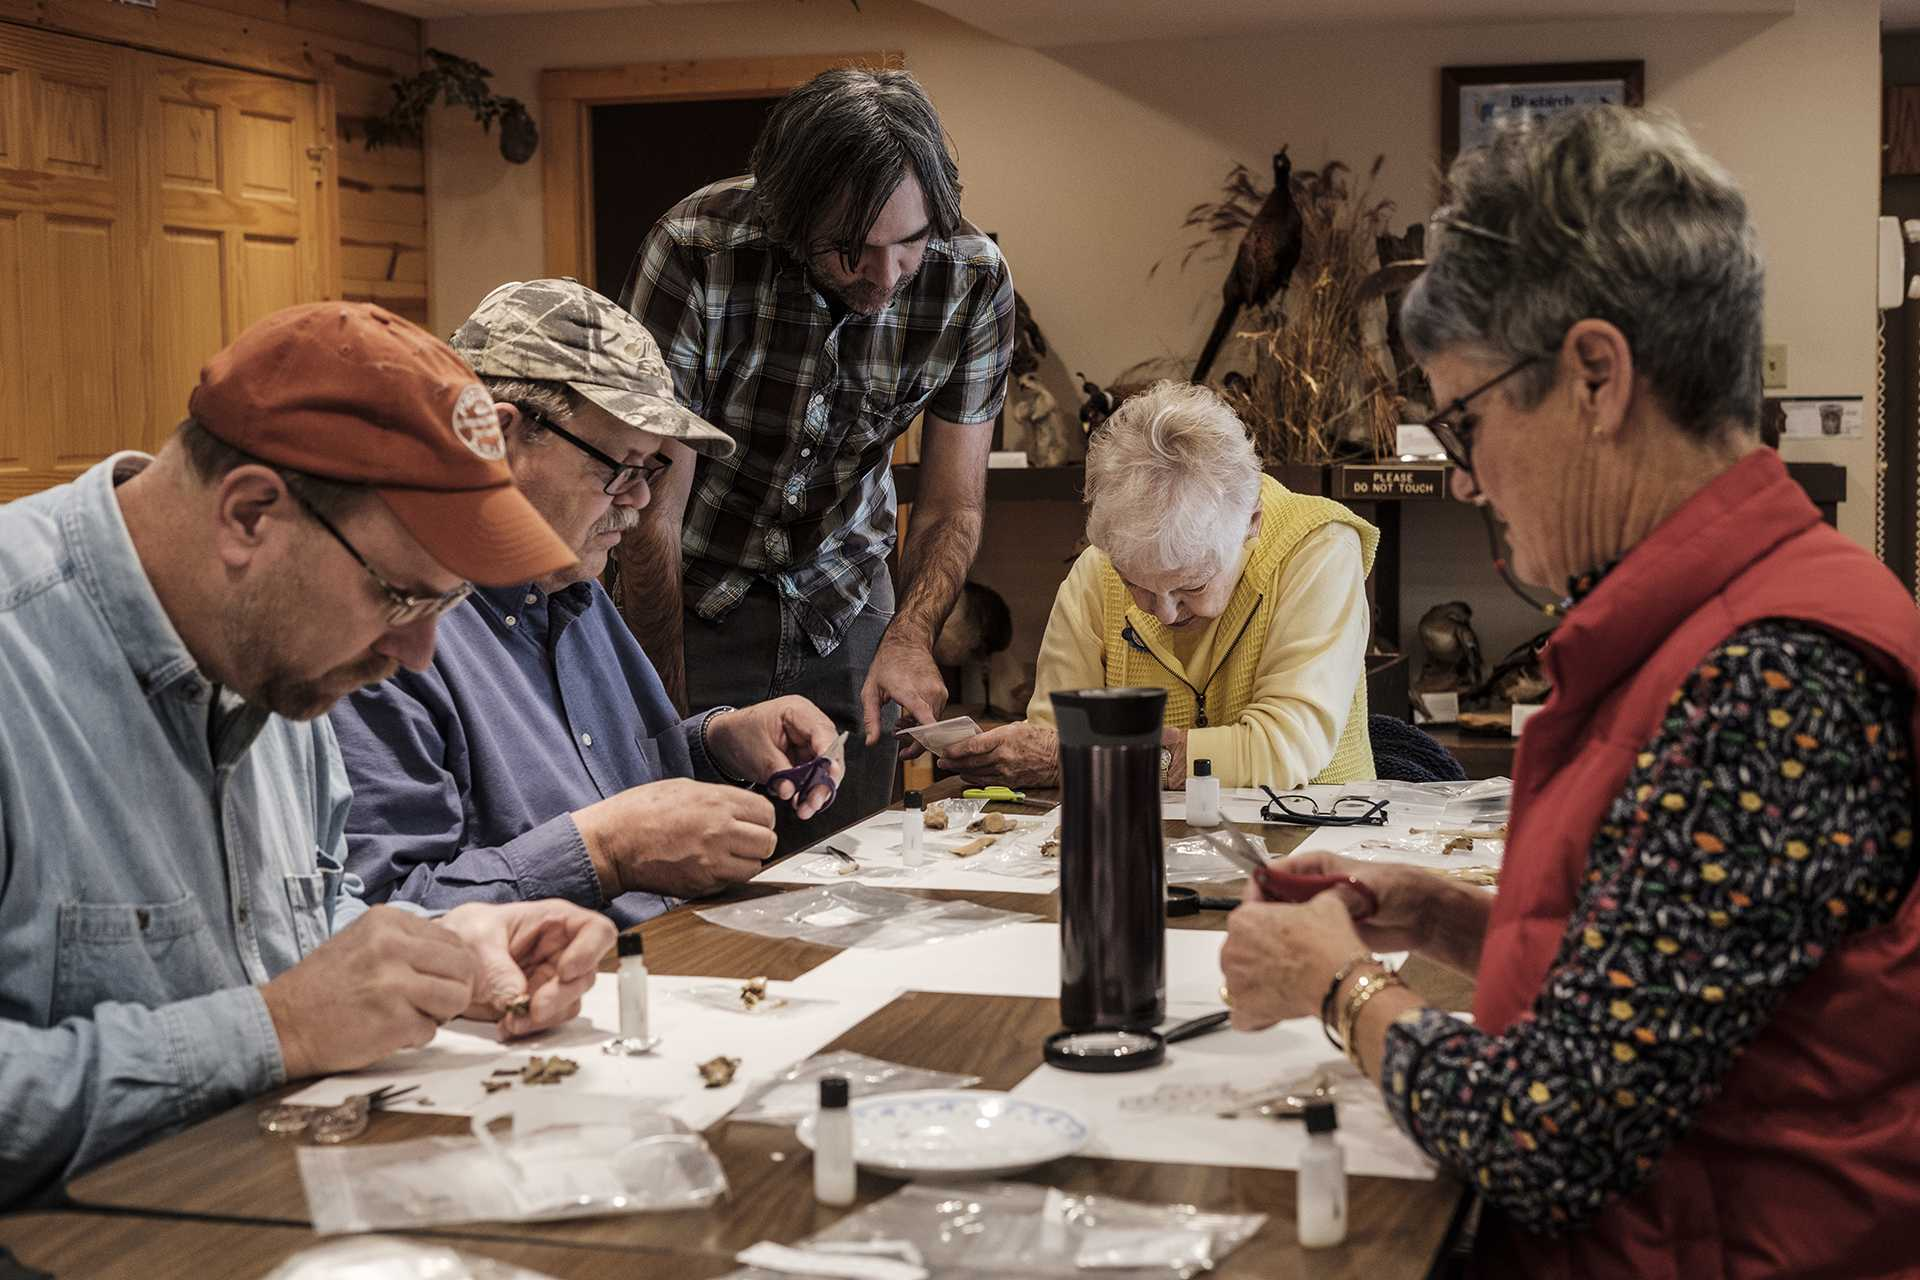 Archaeologist Bryan Kendall of the Office of the State Archaeologist instructs volunteers as they label artifacts on Friday, Jan. 19, 2018. Artifacts included both historic and prehistoric animal bones and pottery fragments. (Nick Rohlman/The Daily Iowan)